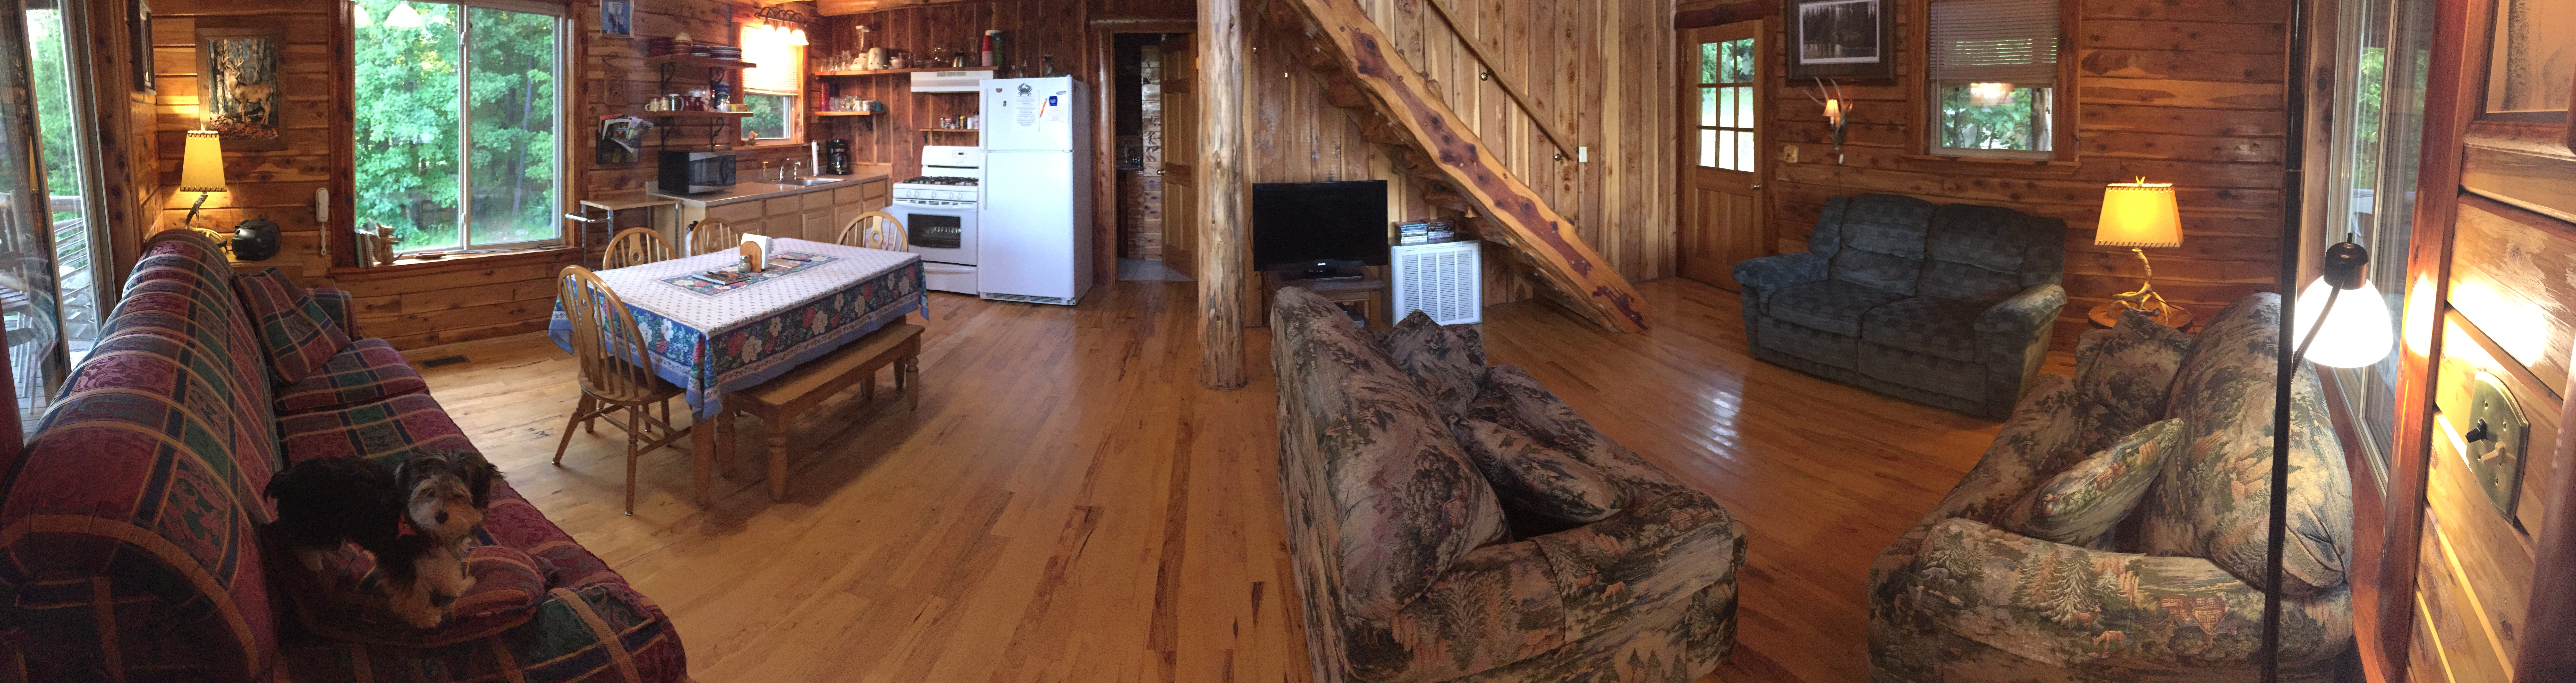 Pano of Kitchen and Living Room